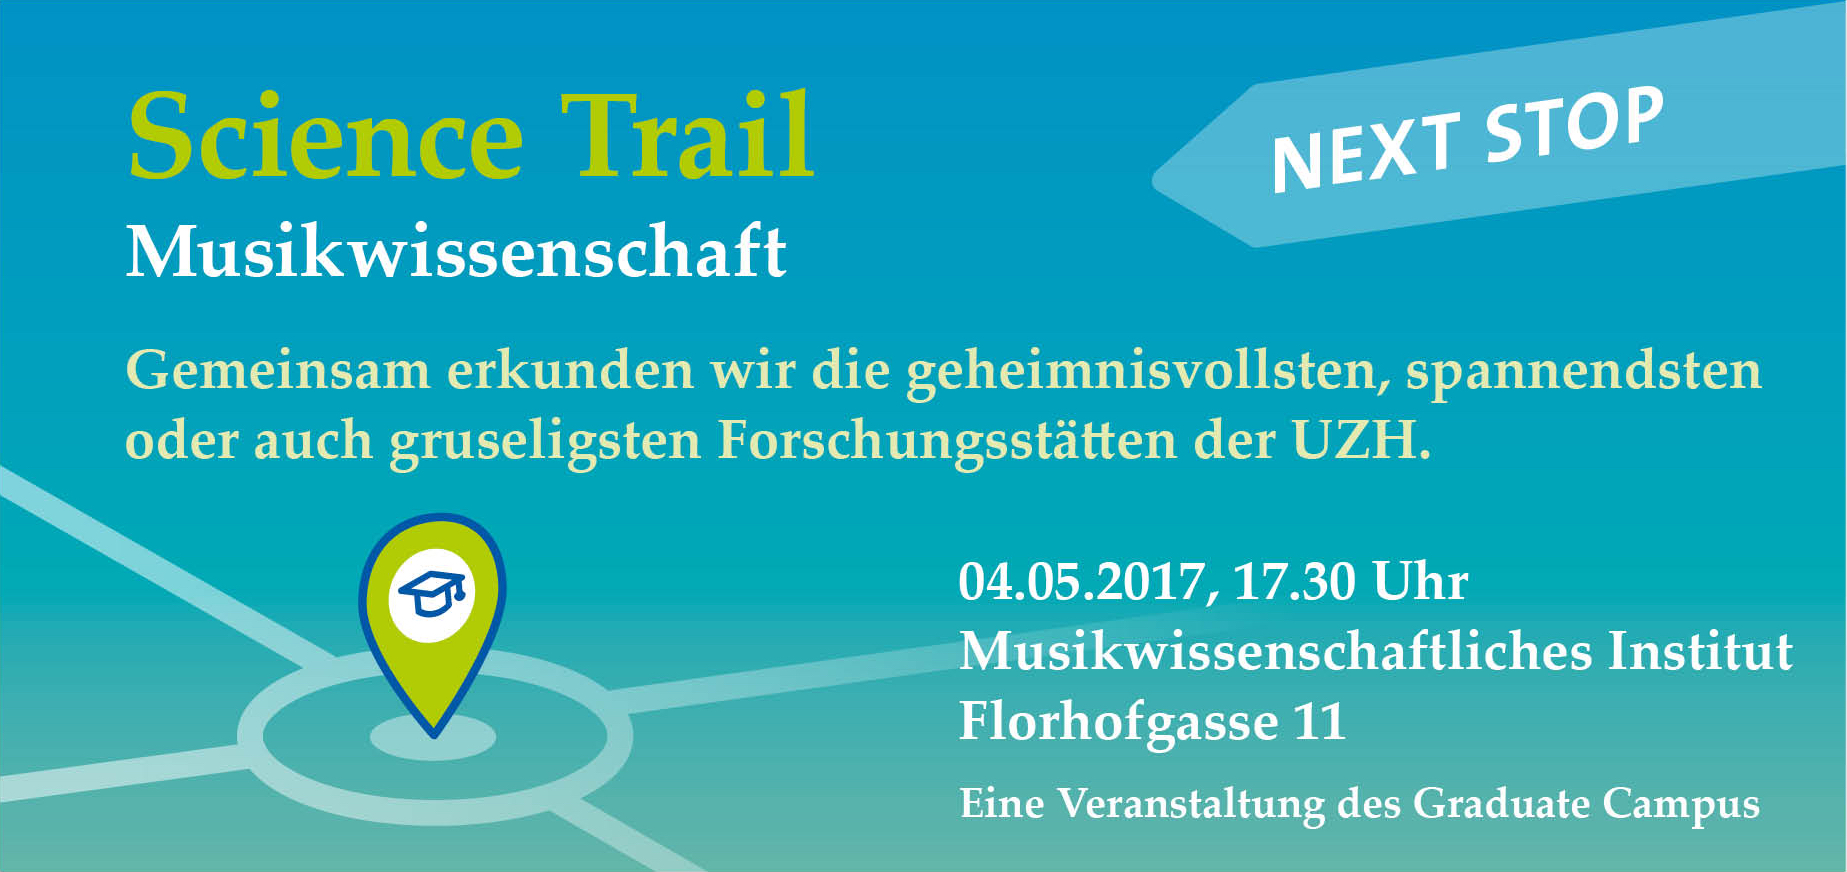 Science Trail Musikwissenschaft